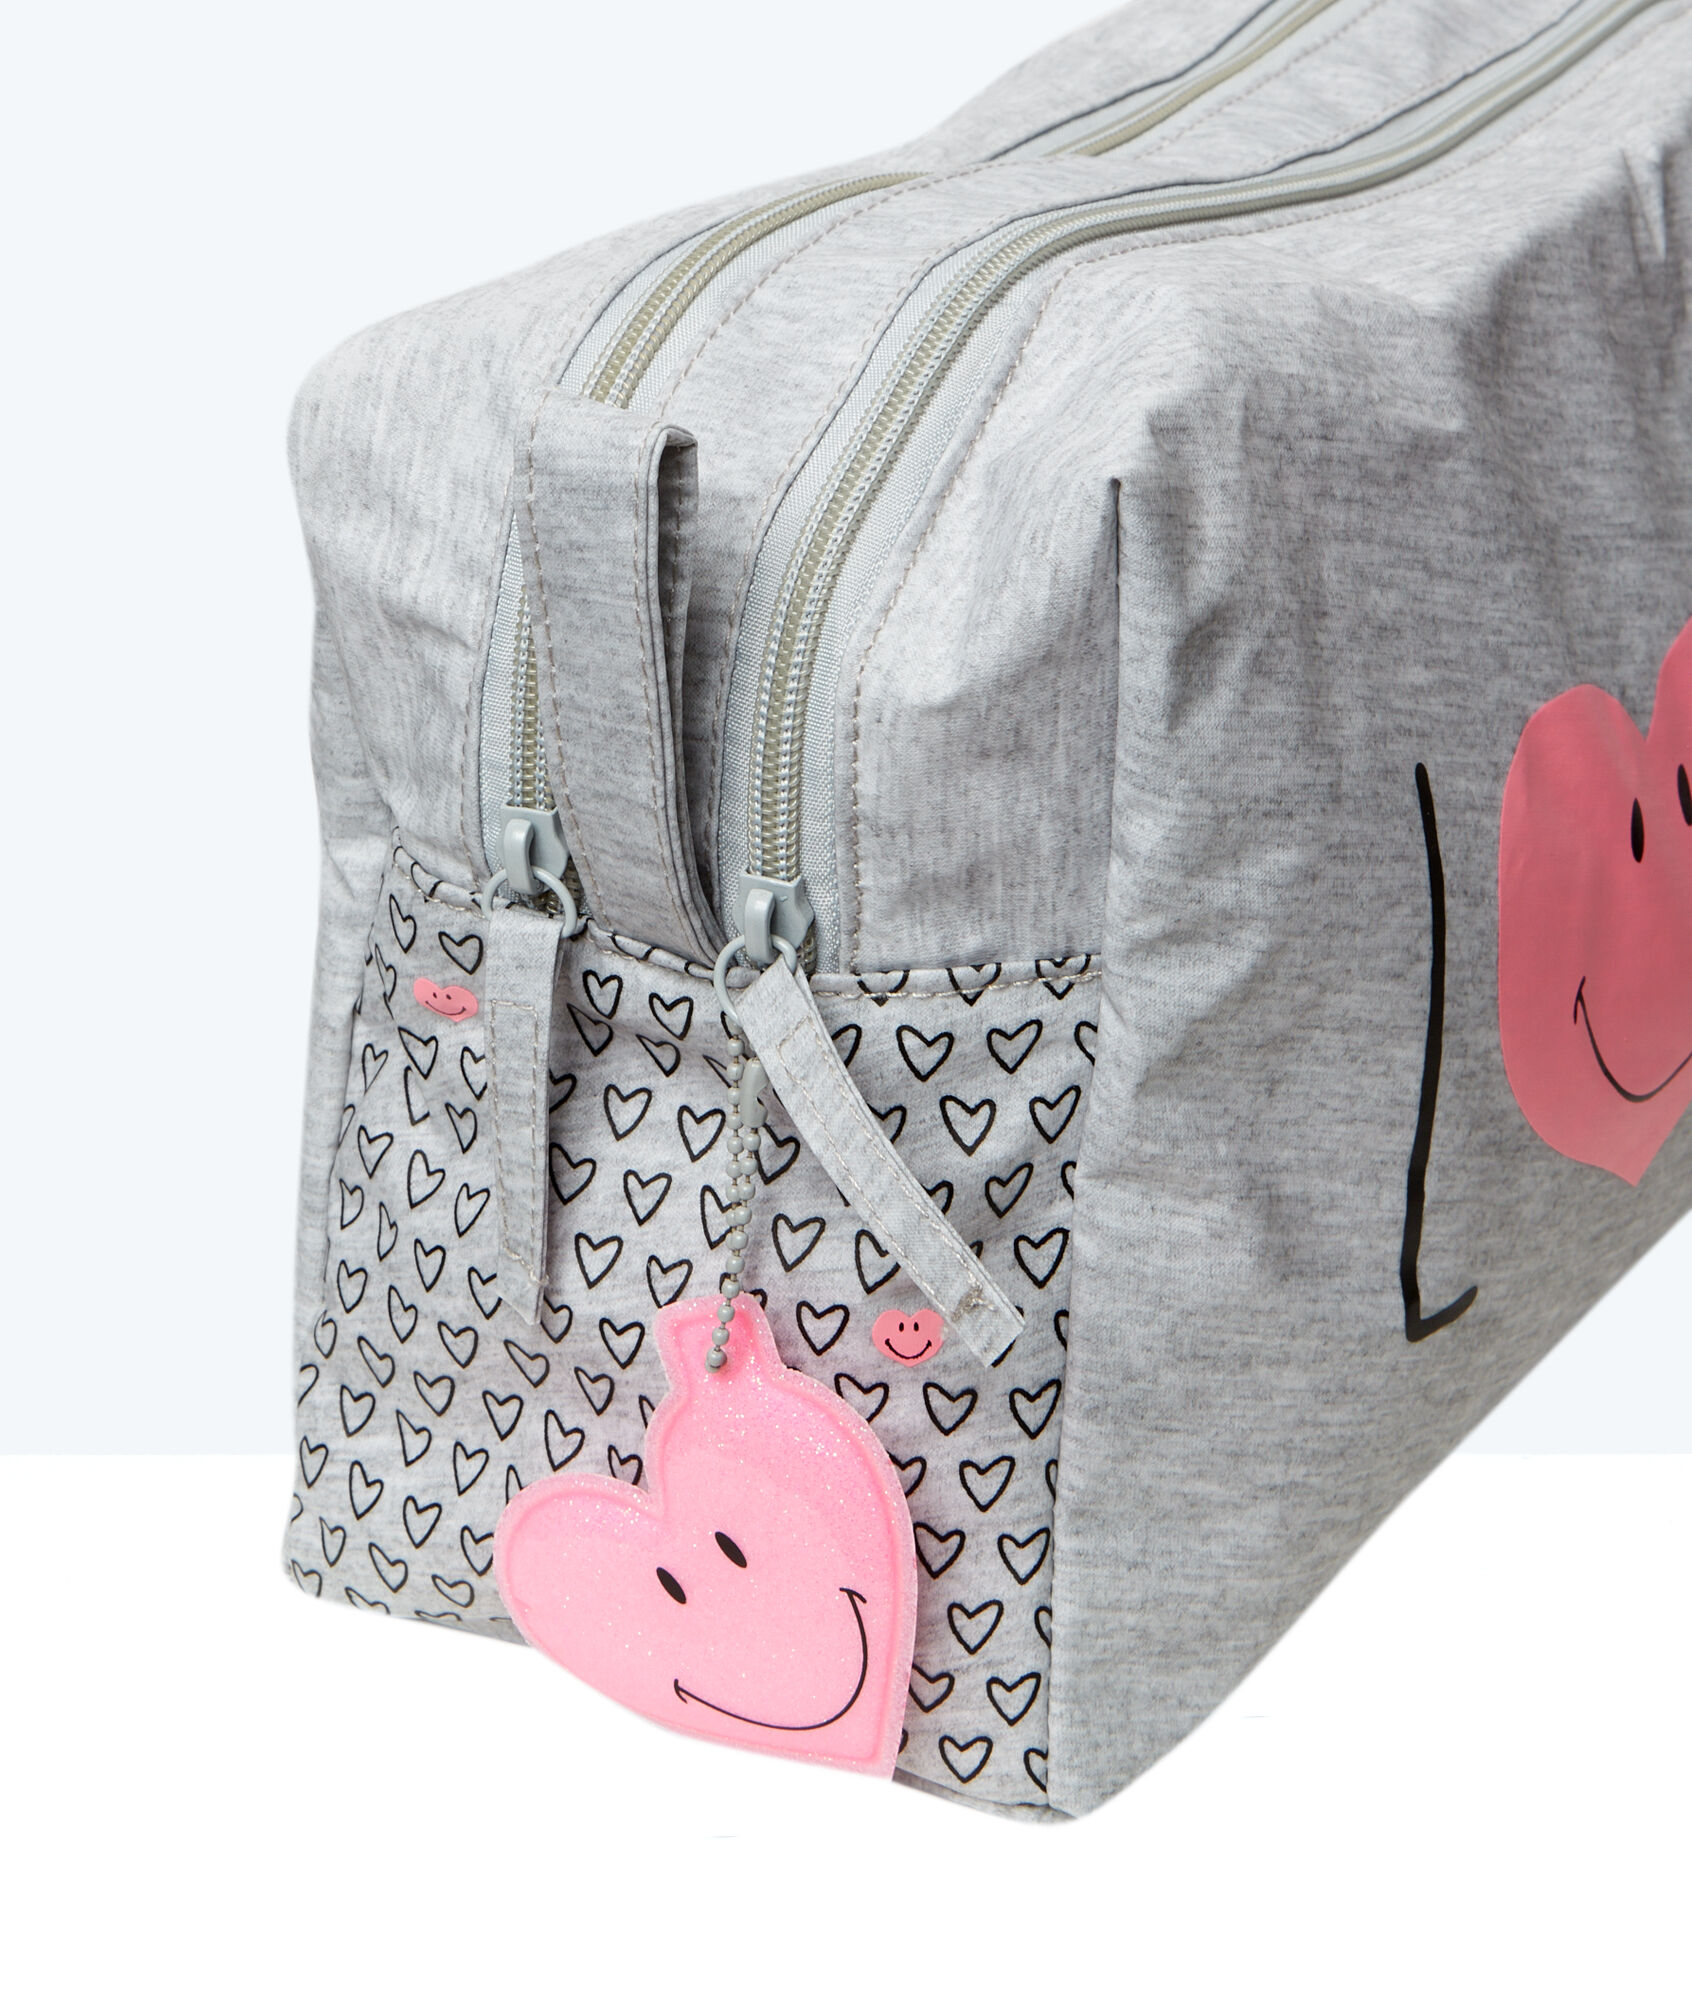 smiley bag trousse de toilette imprim e d tail curseur fantaisie etam. Black Bedroom Furniture Sets. Home Design Ideas